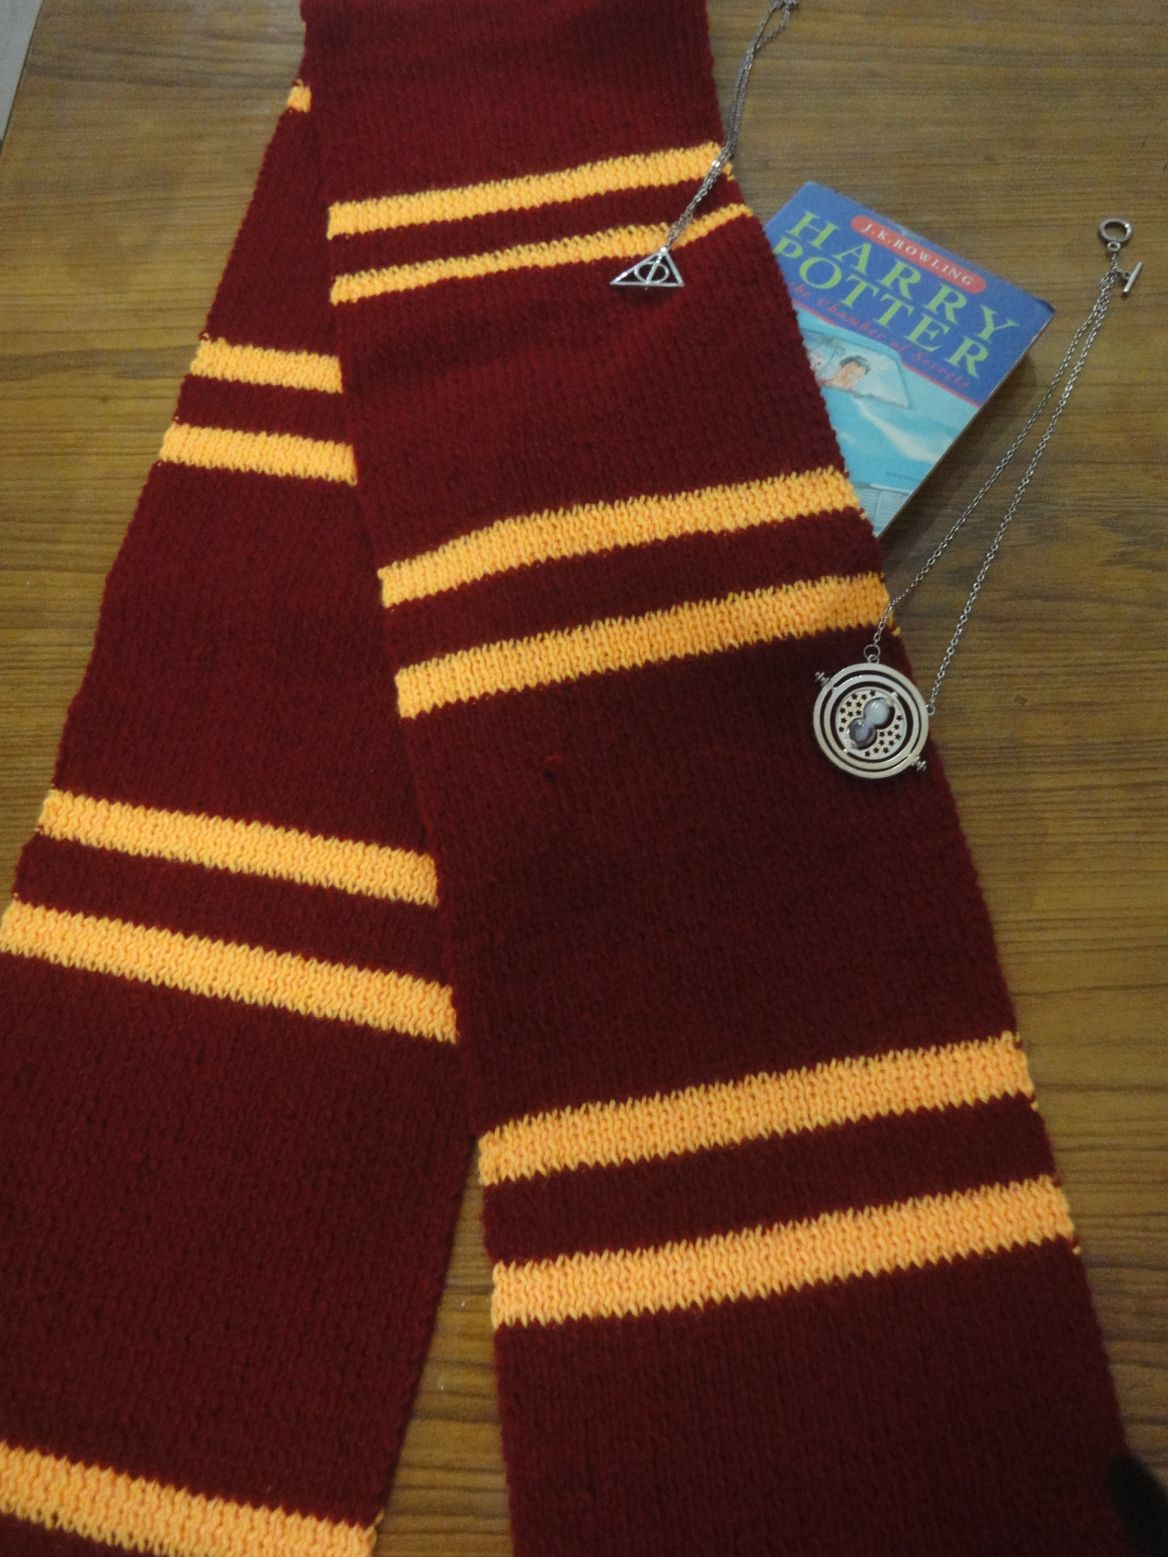 GRYFFINDOR HOUSE SCARF PATTERN | Harry potter scarf, Change colour ...